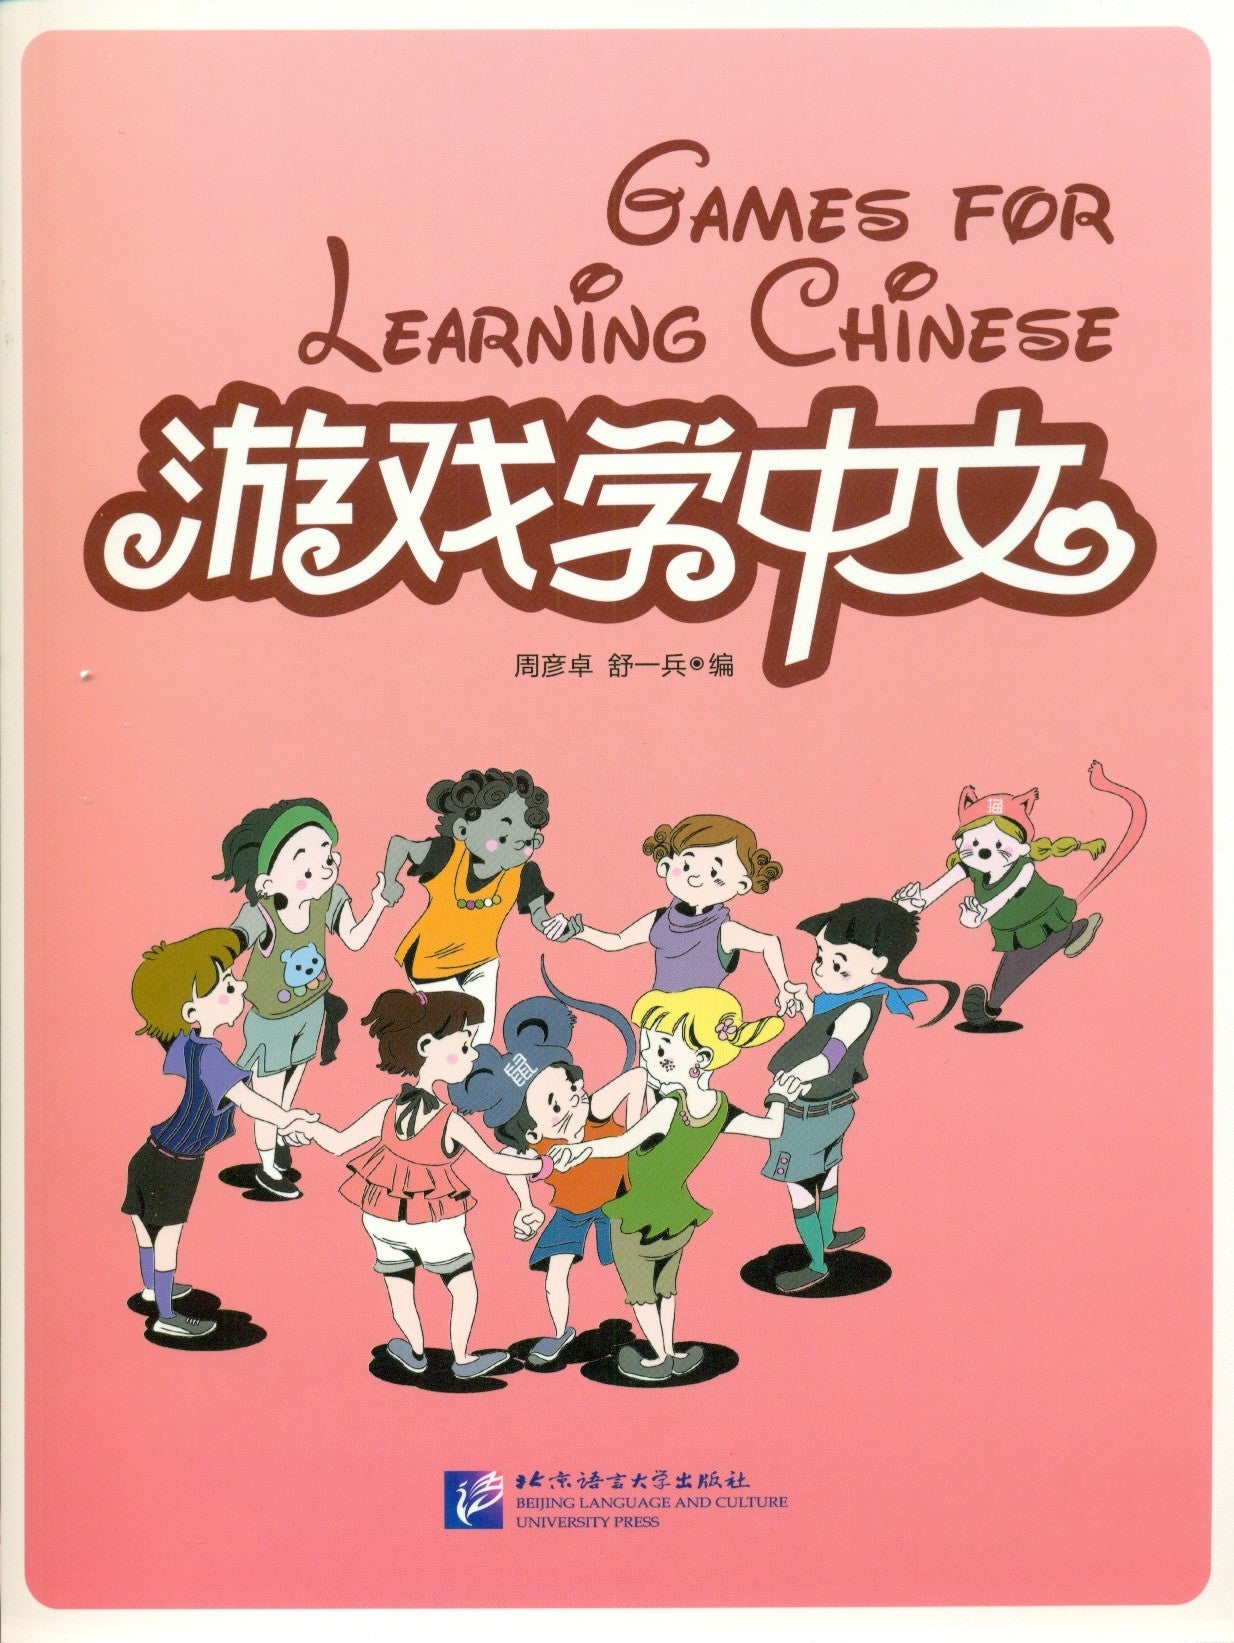 Games For Learning Chinese 游戏学中文